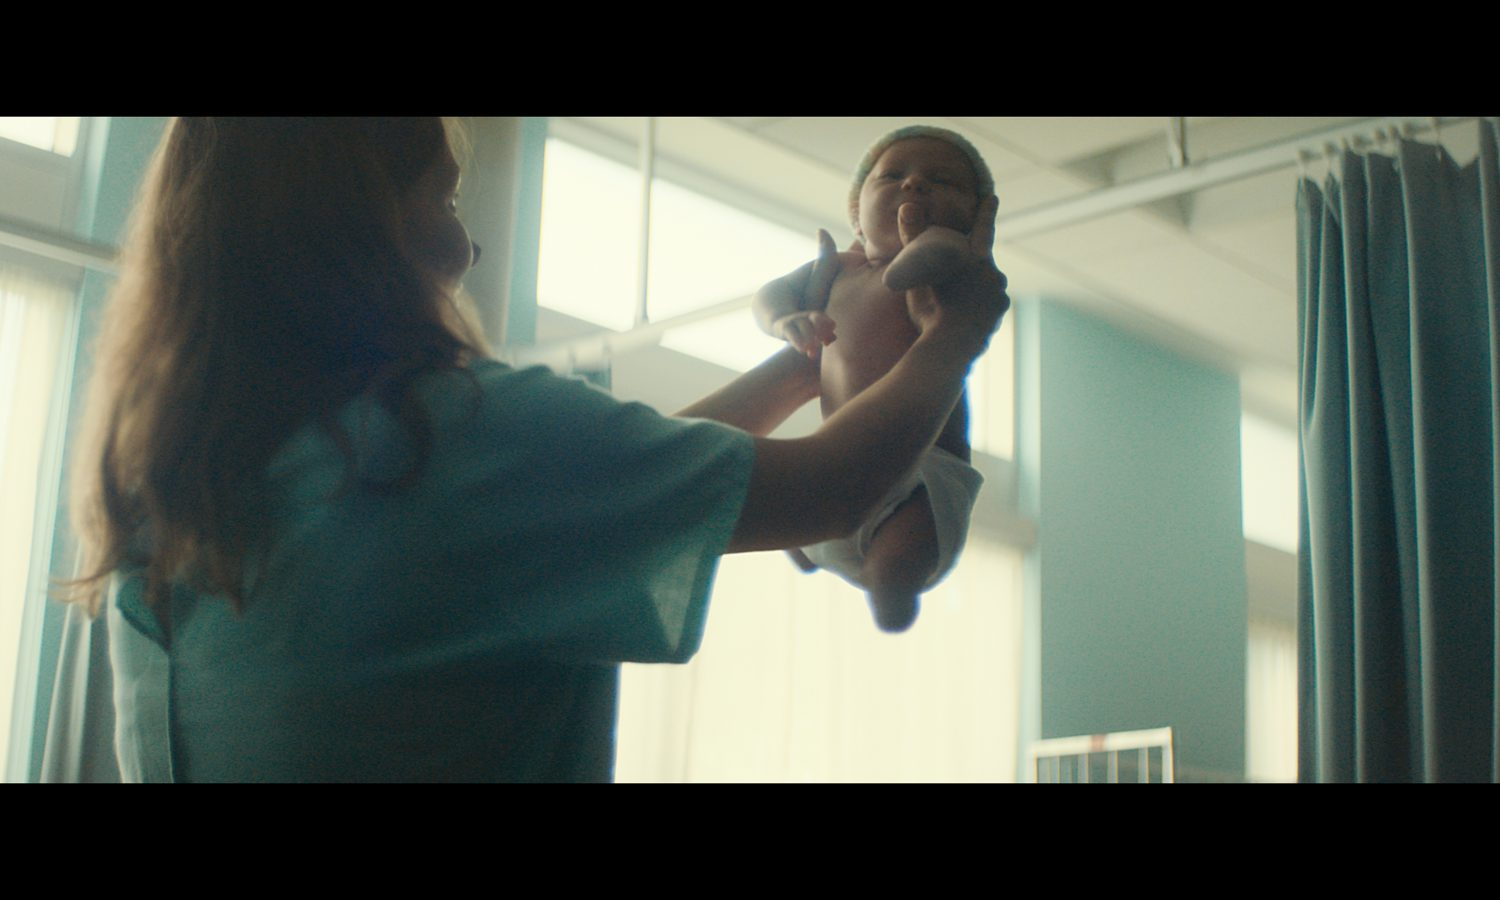 For The First Time, Toyota Will Run Three Super Bowl Ads; Spots Utilize The Olympic and Paralympic Games Themes of Unity, Courage and Inspiration